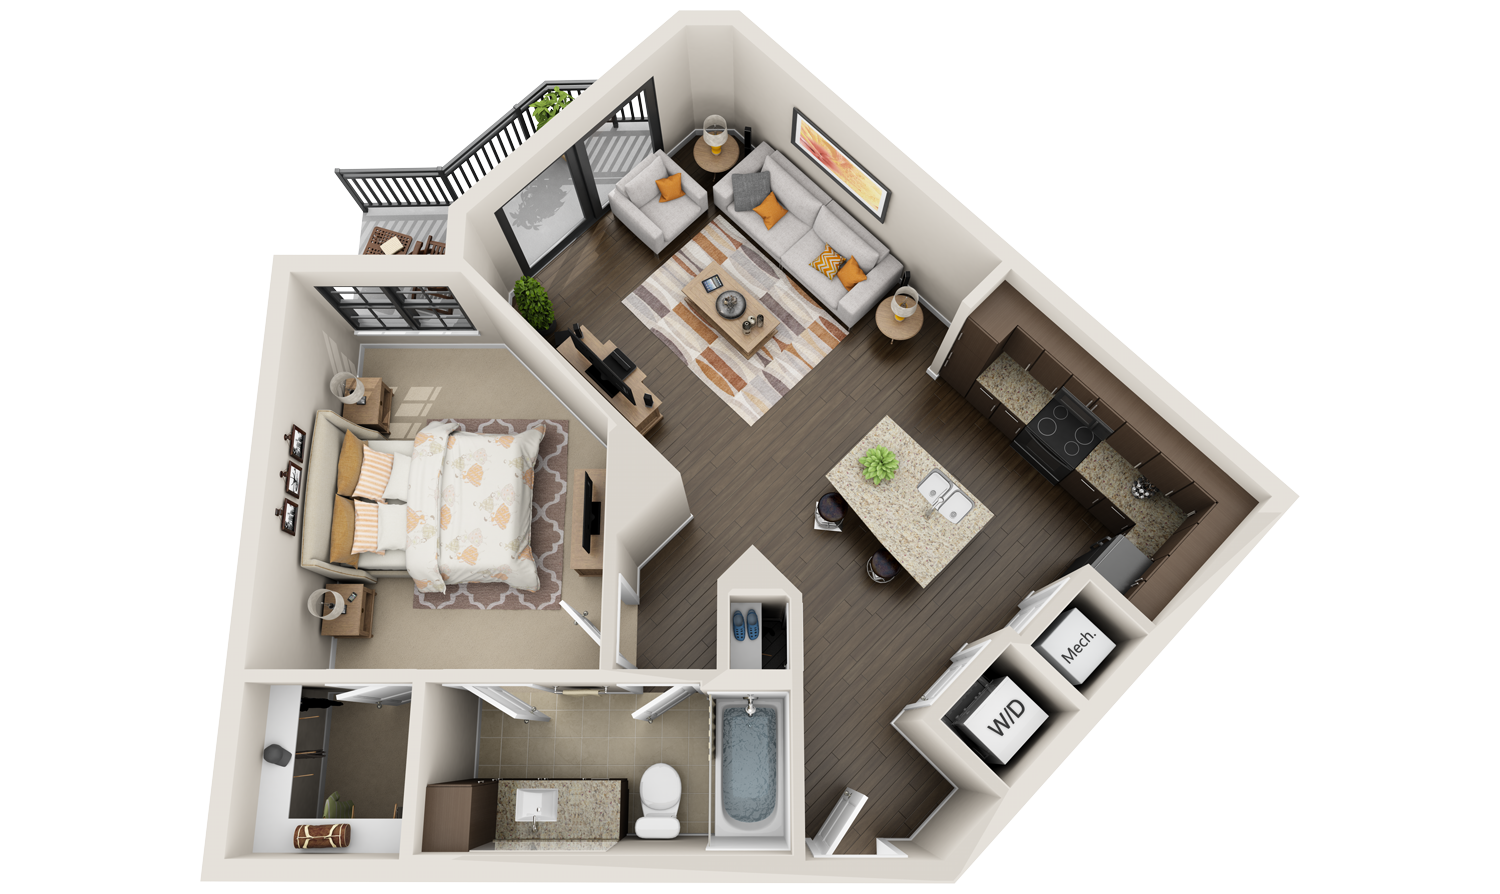 3d floor plans for apartments that look real 3d apartment layout